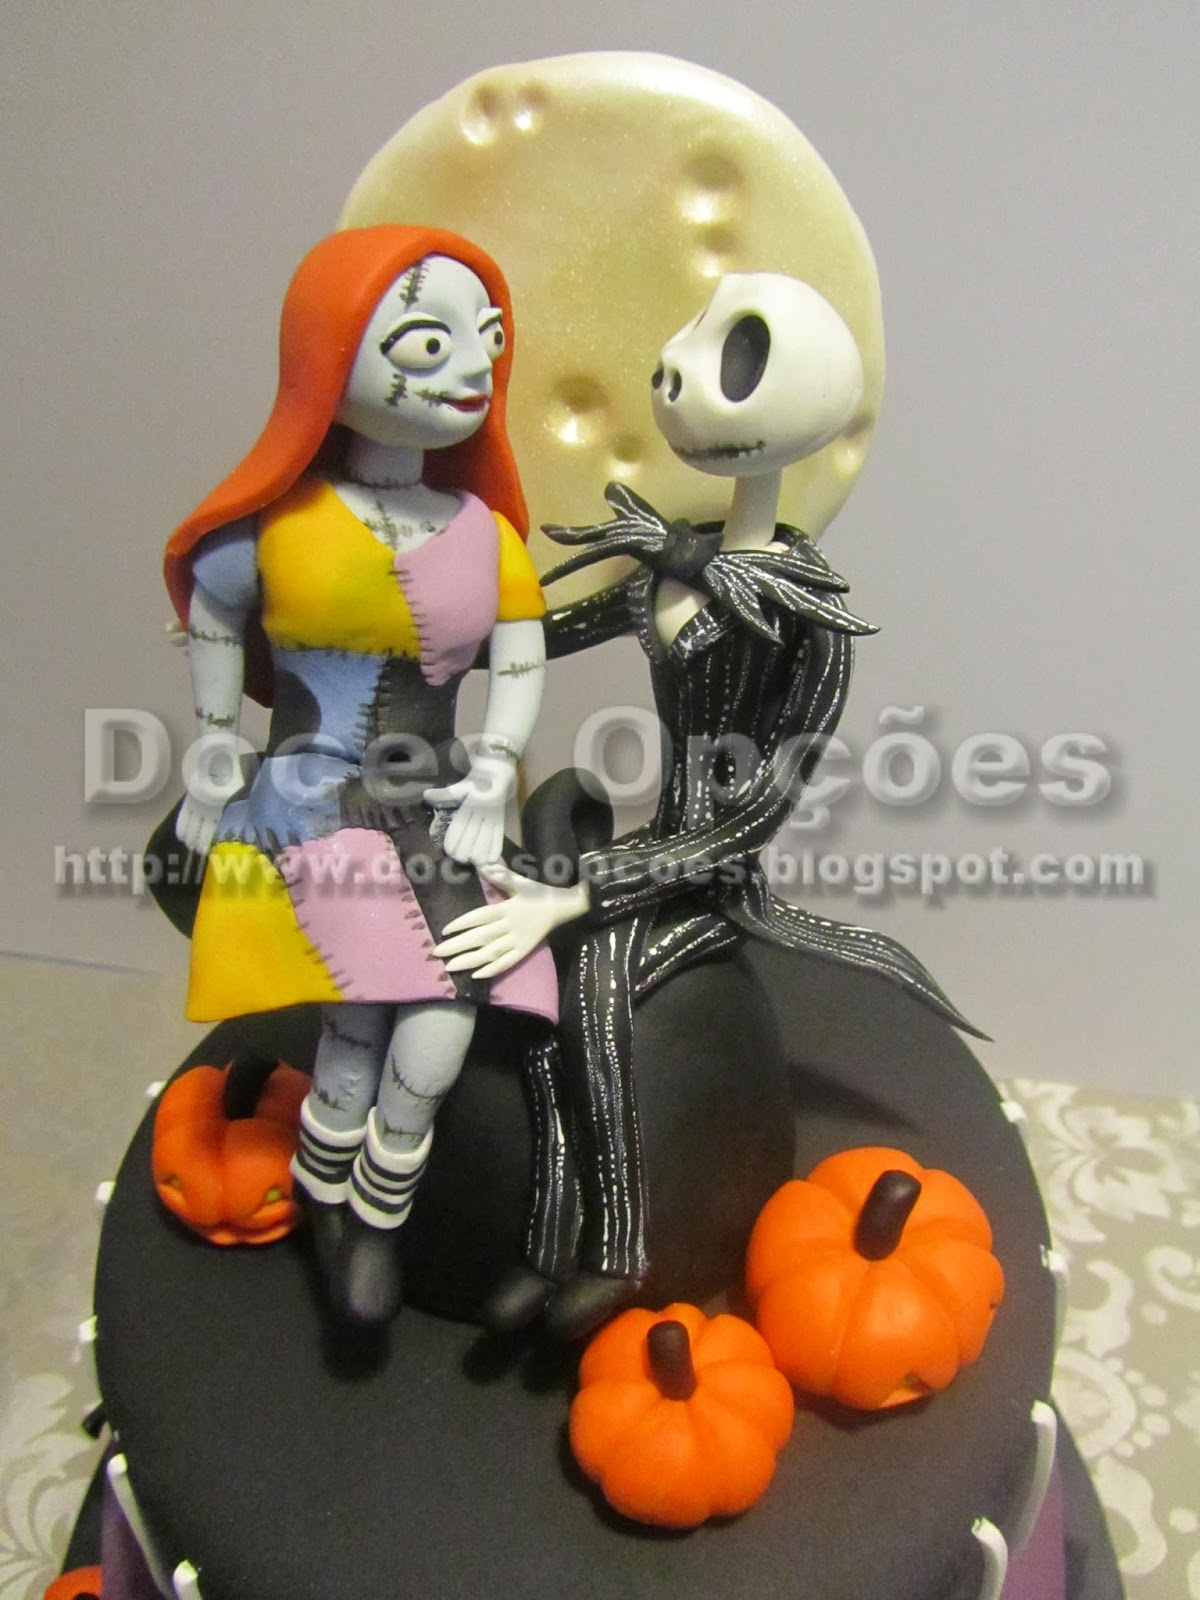 Jack Skellington and Sally aniversary cake